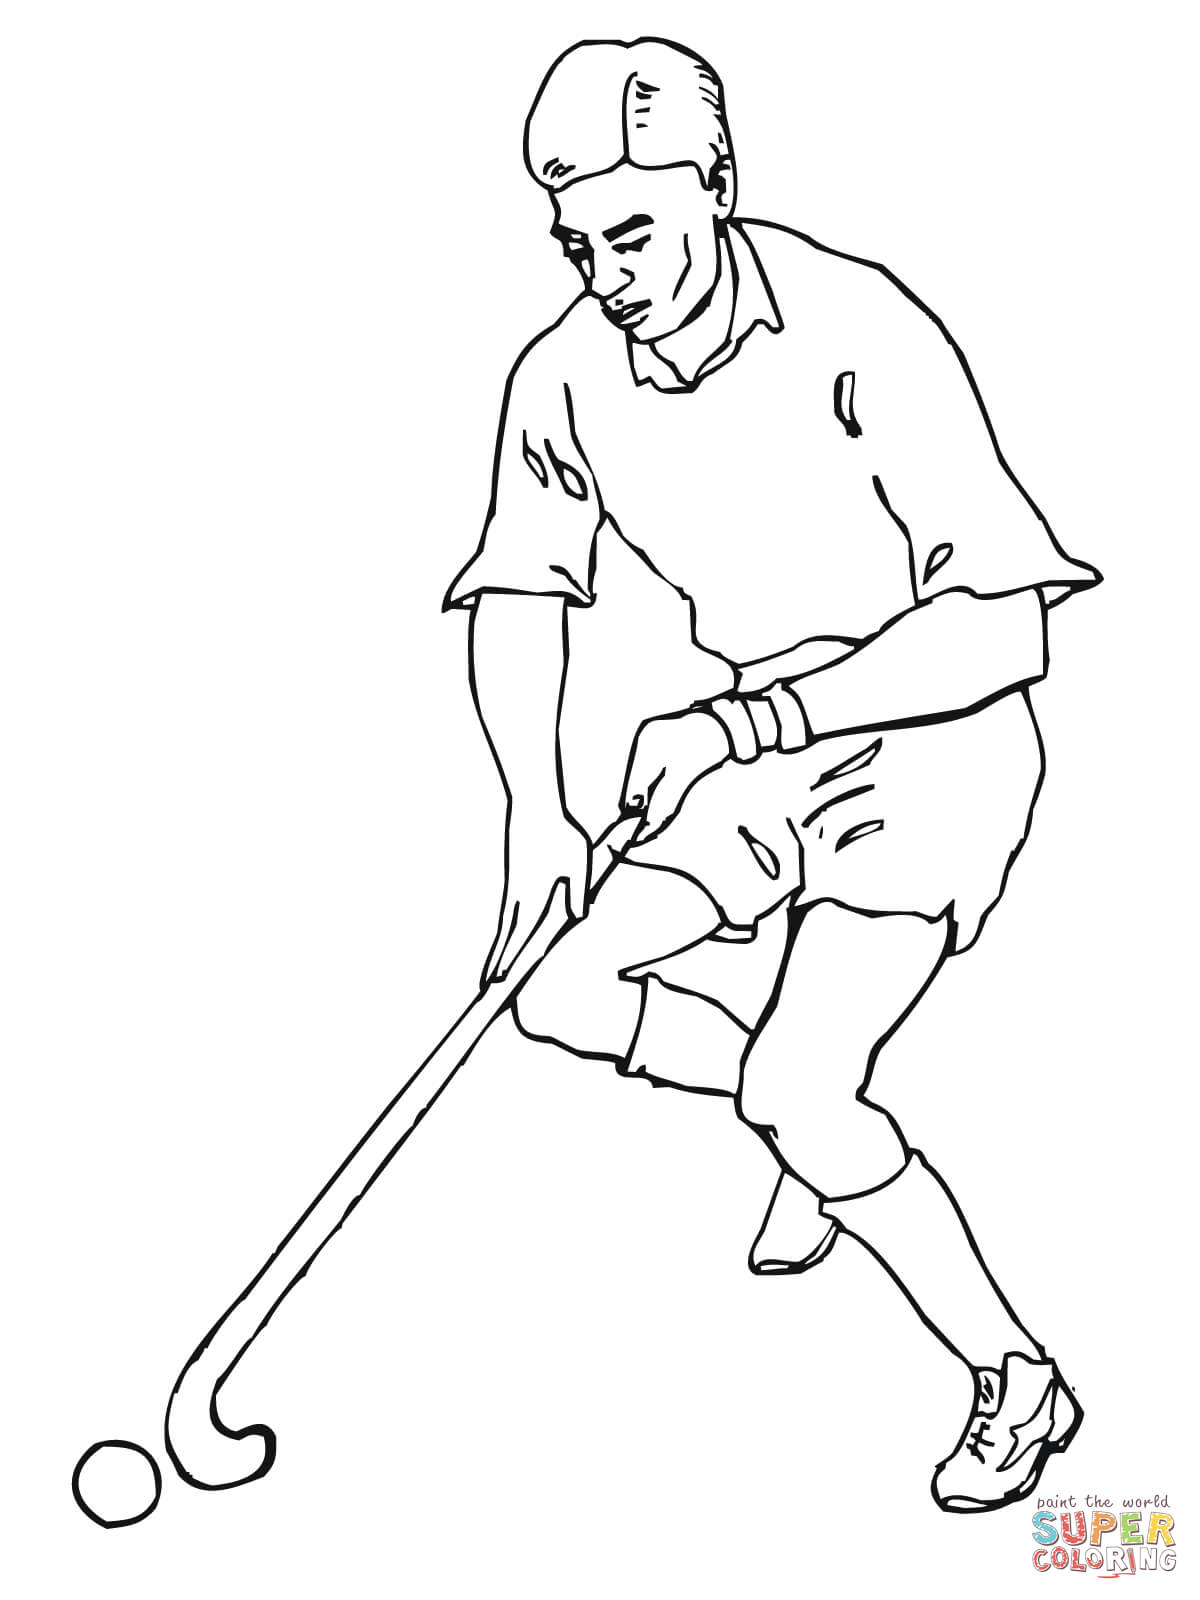 Hockey Drawing At Getdrawings